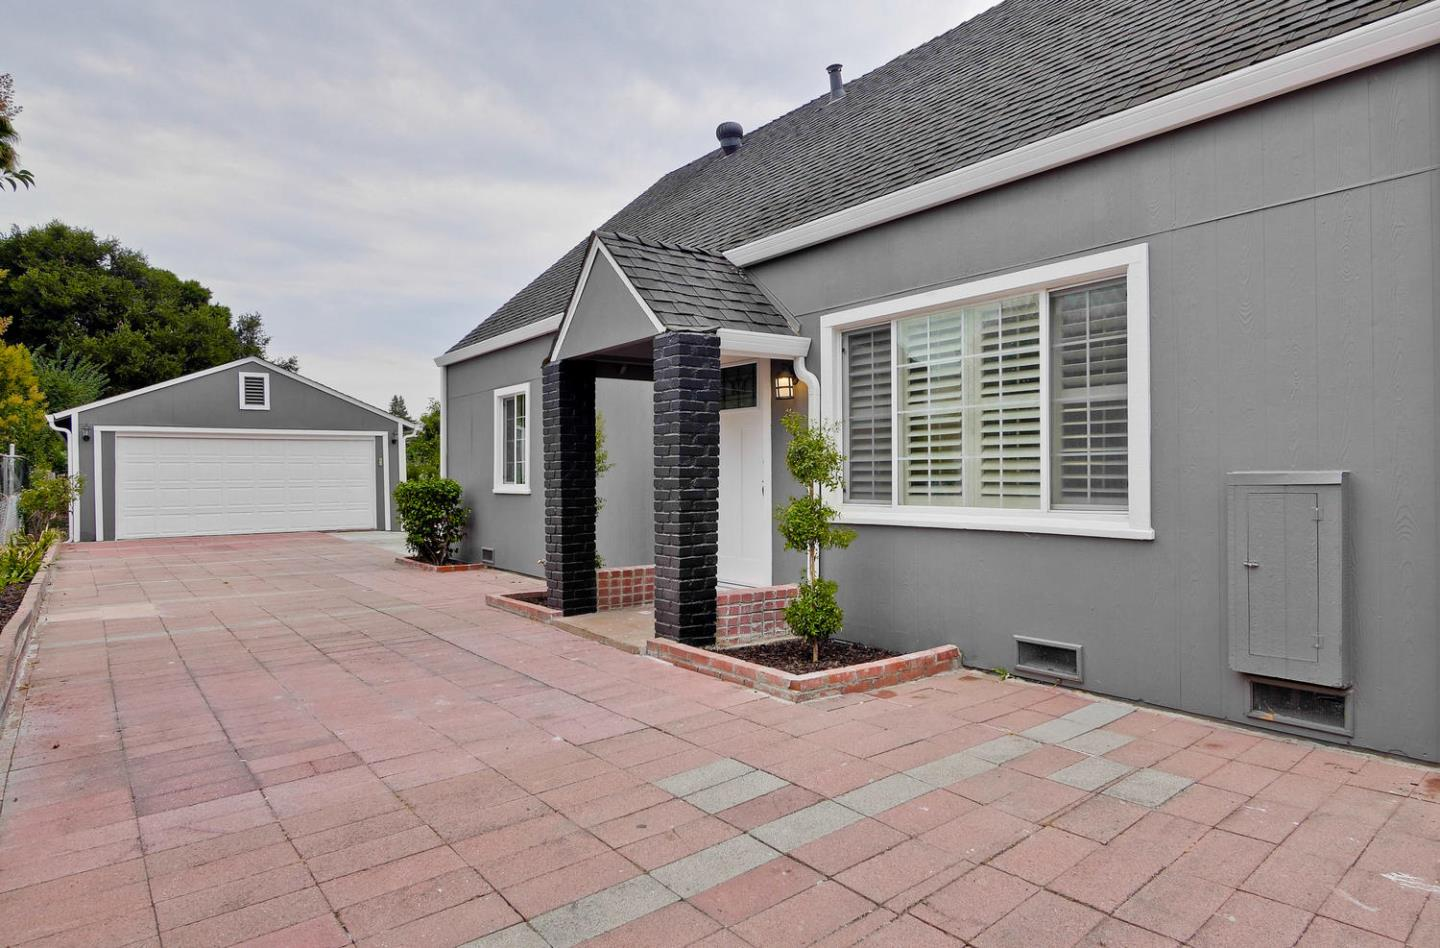 Single Family Home for Sale at 475 Bell Street East Palo Alto, California 94303 United States